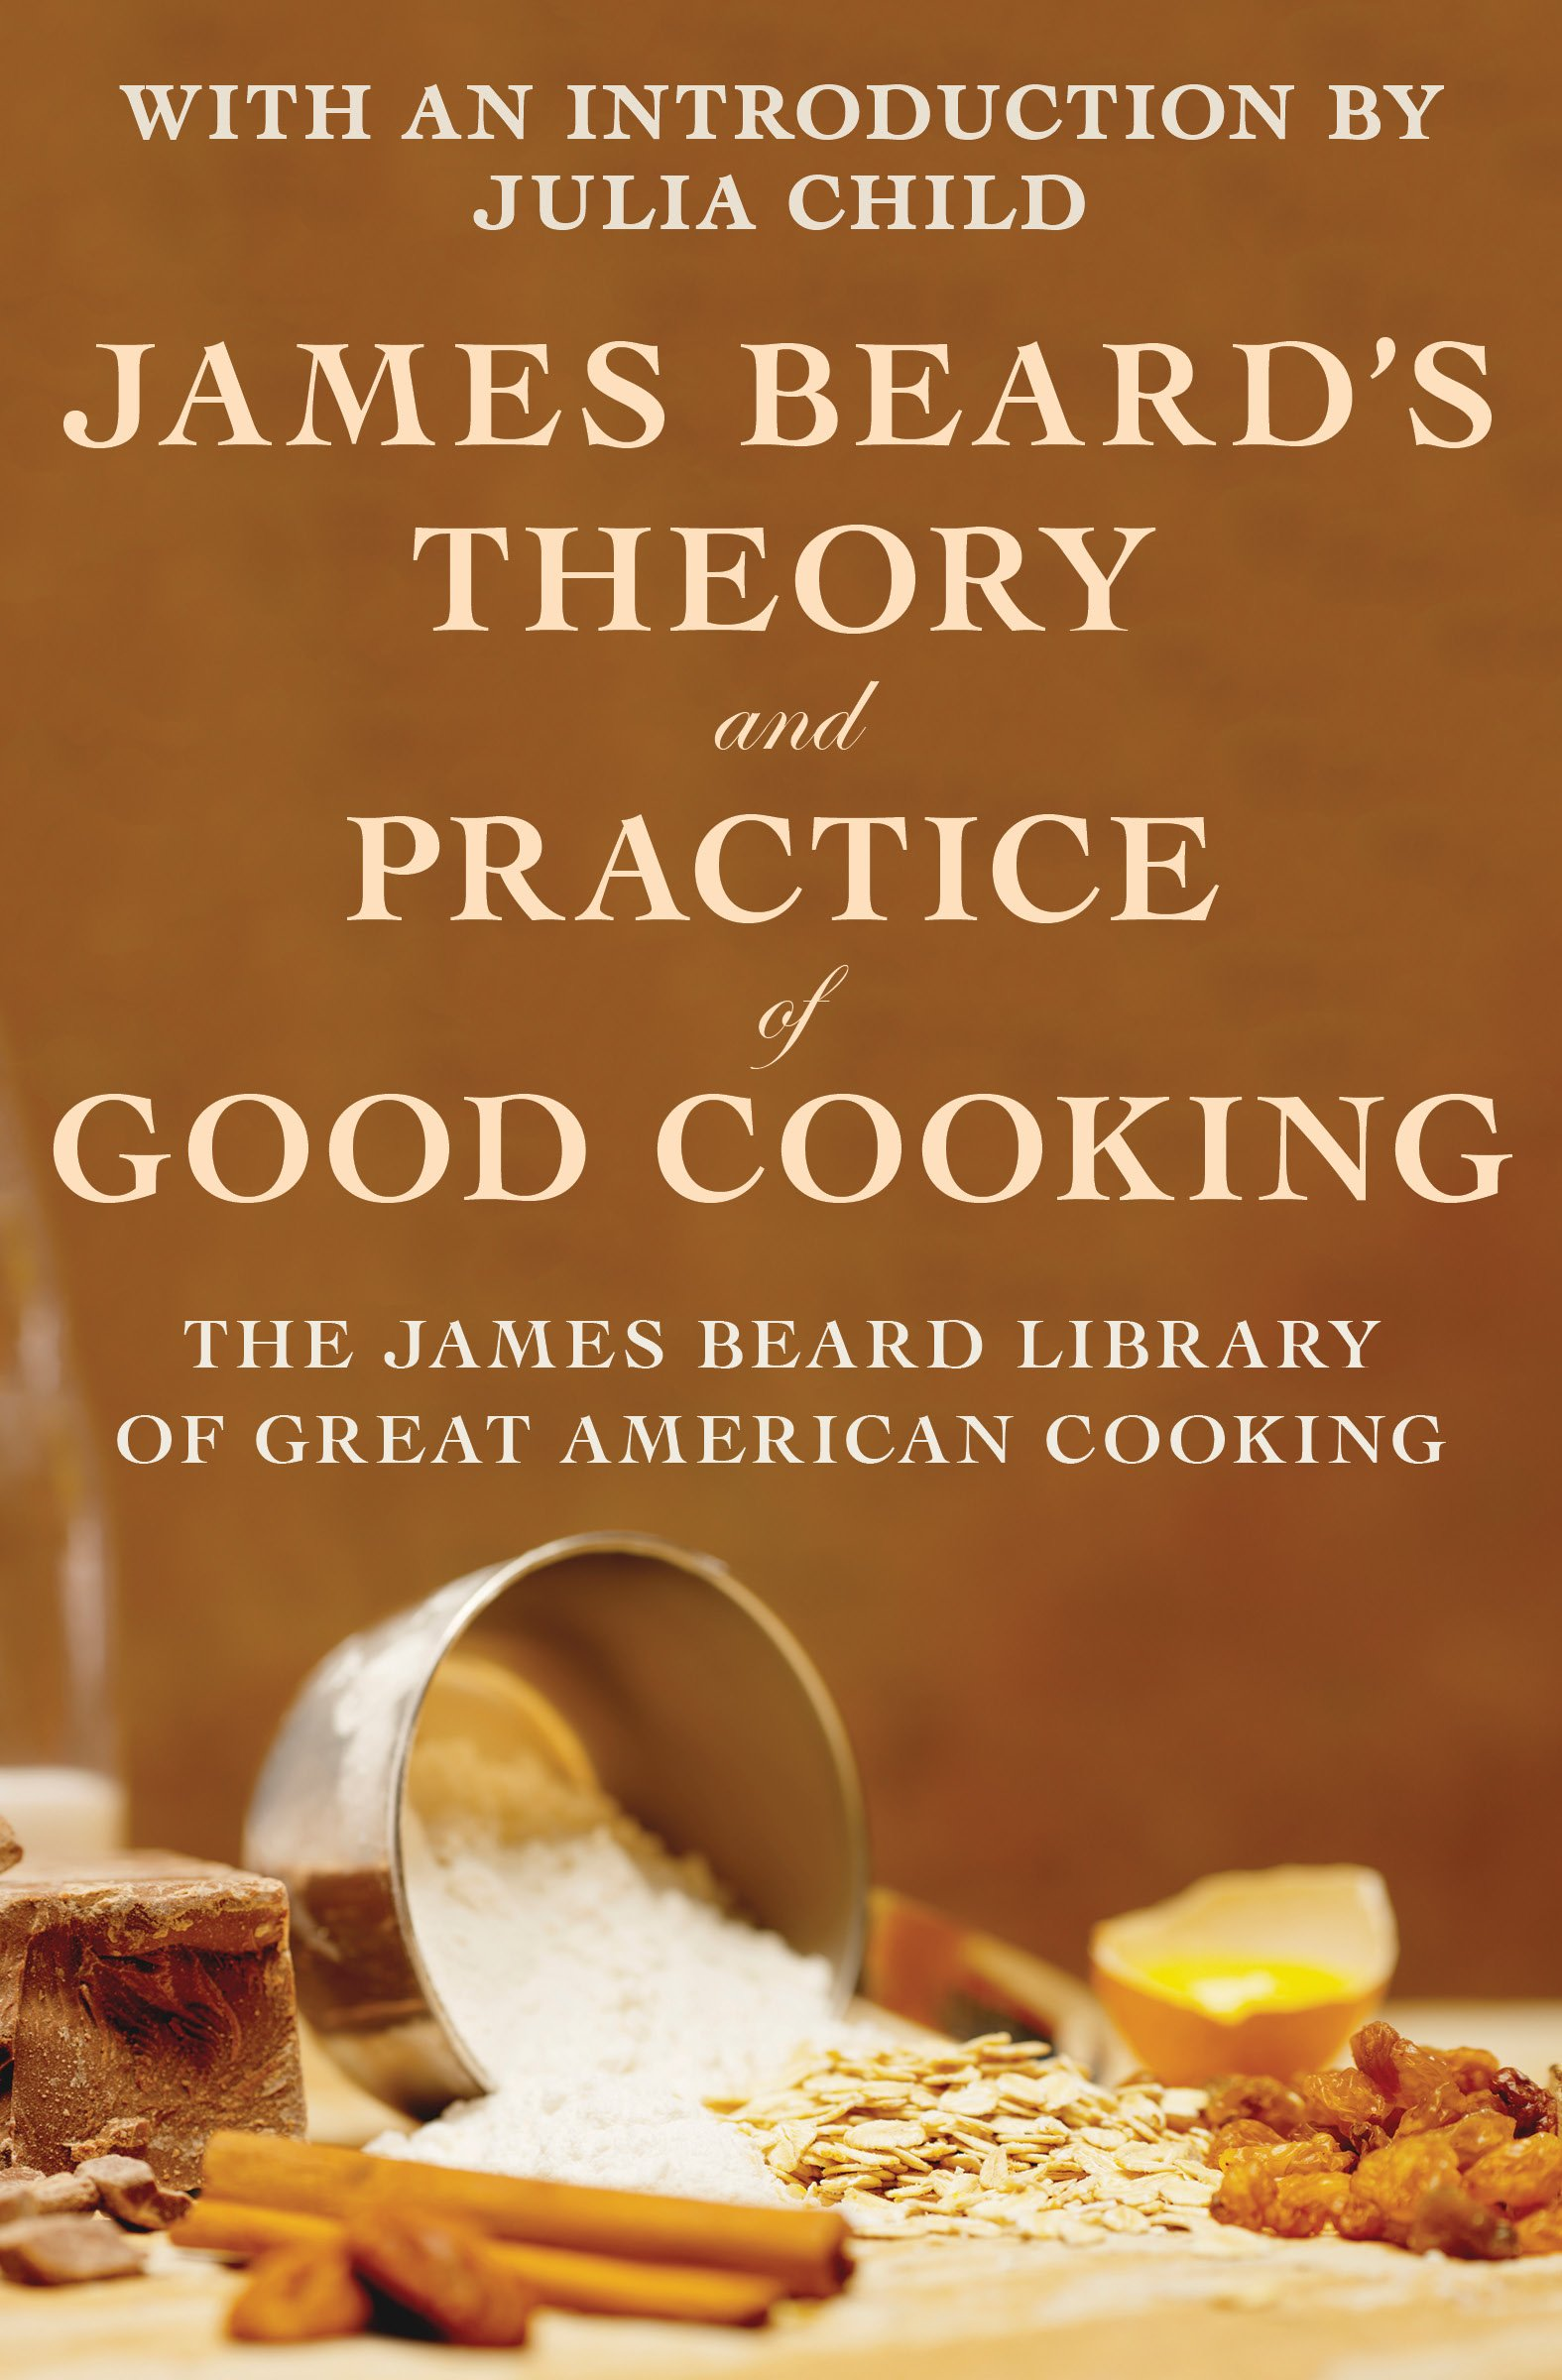 James Beard's Theory and Practice of Good Cooking (English Edition)